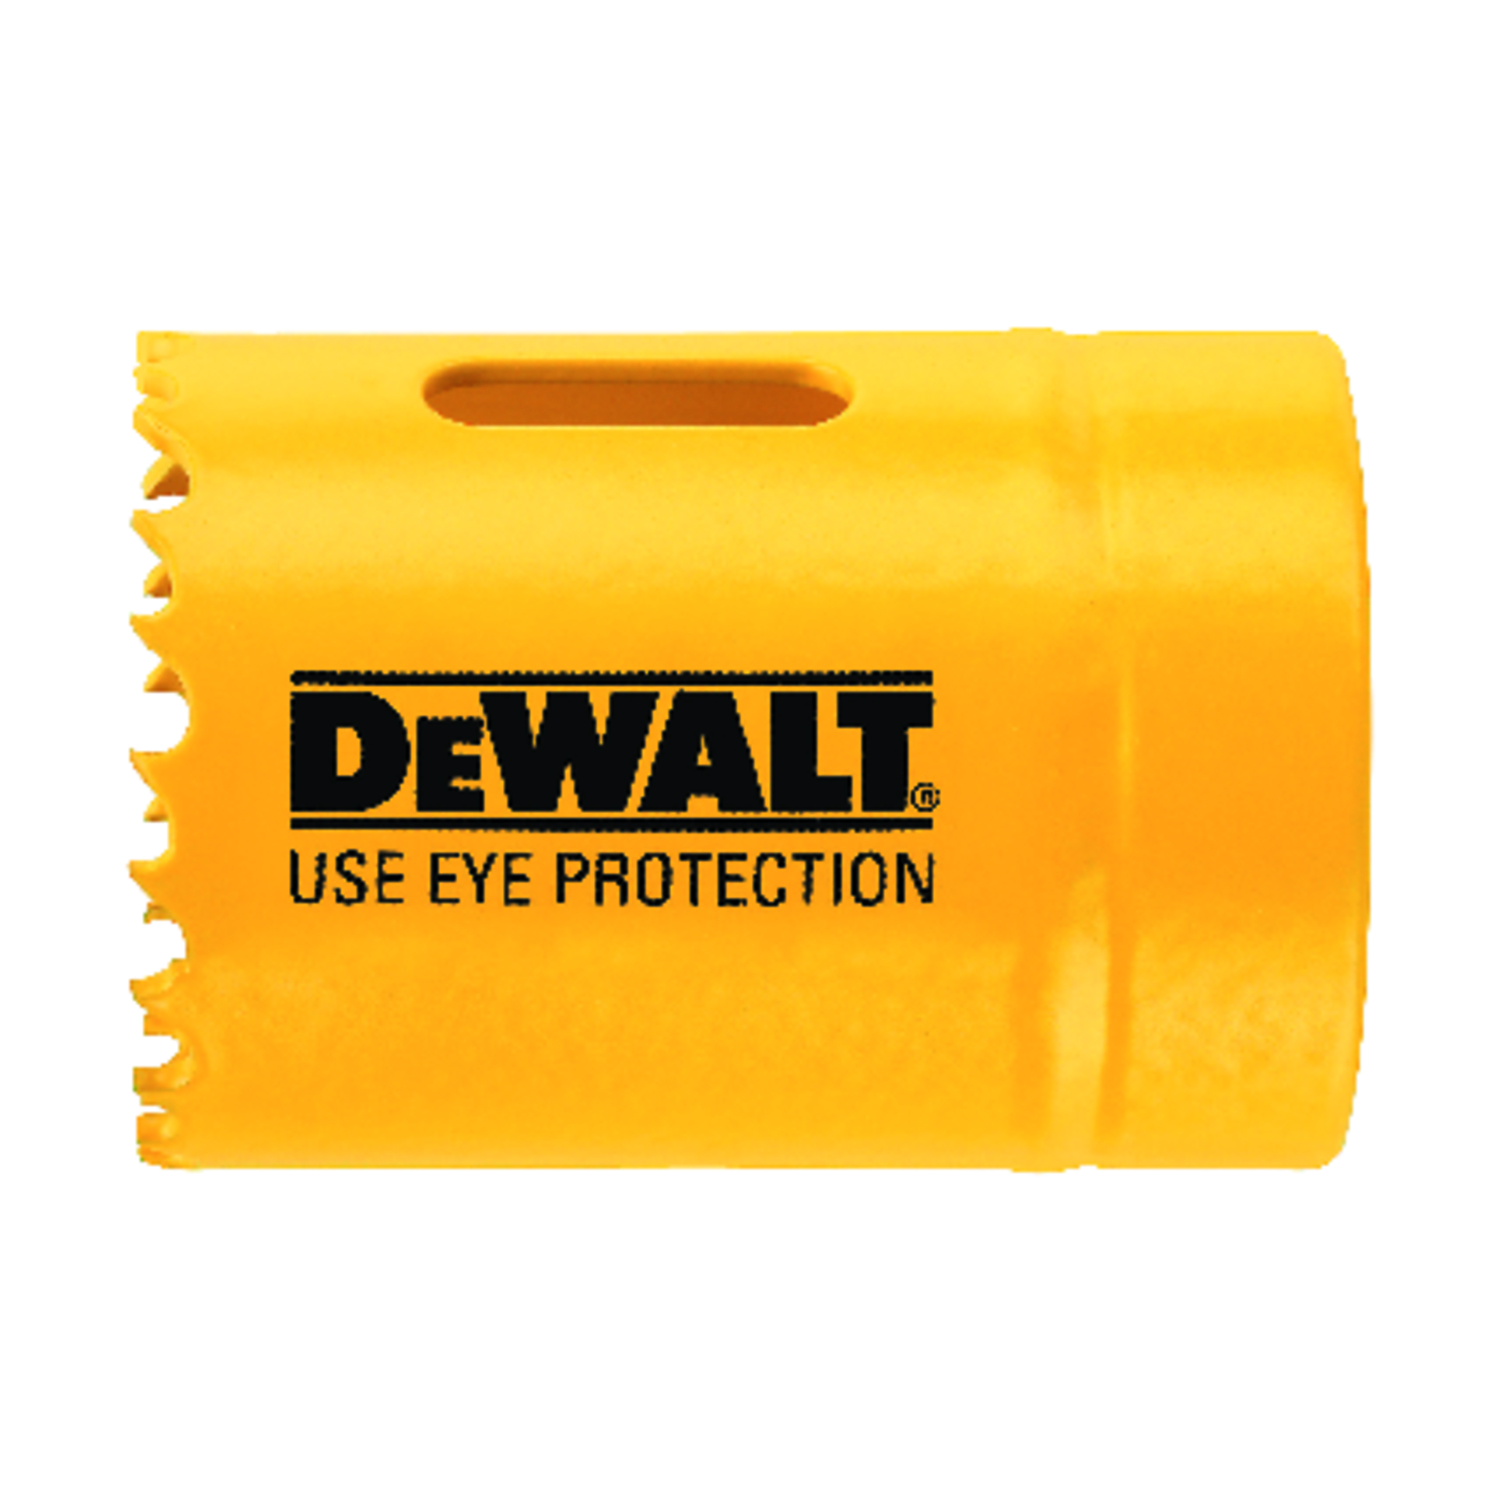 DeWalt  1.75 in. L x 1-1/4 in. Dia. Bi-Metal  1/4 in. 1 pc. Hole Saw